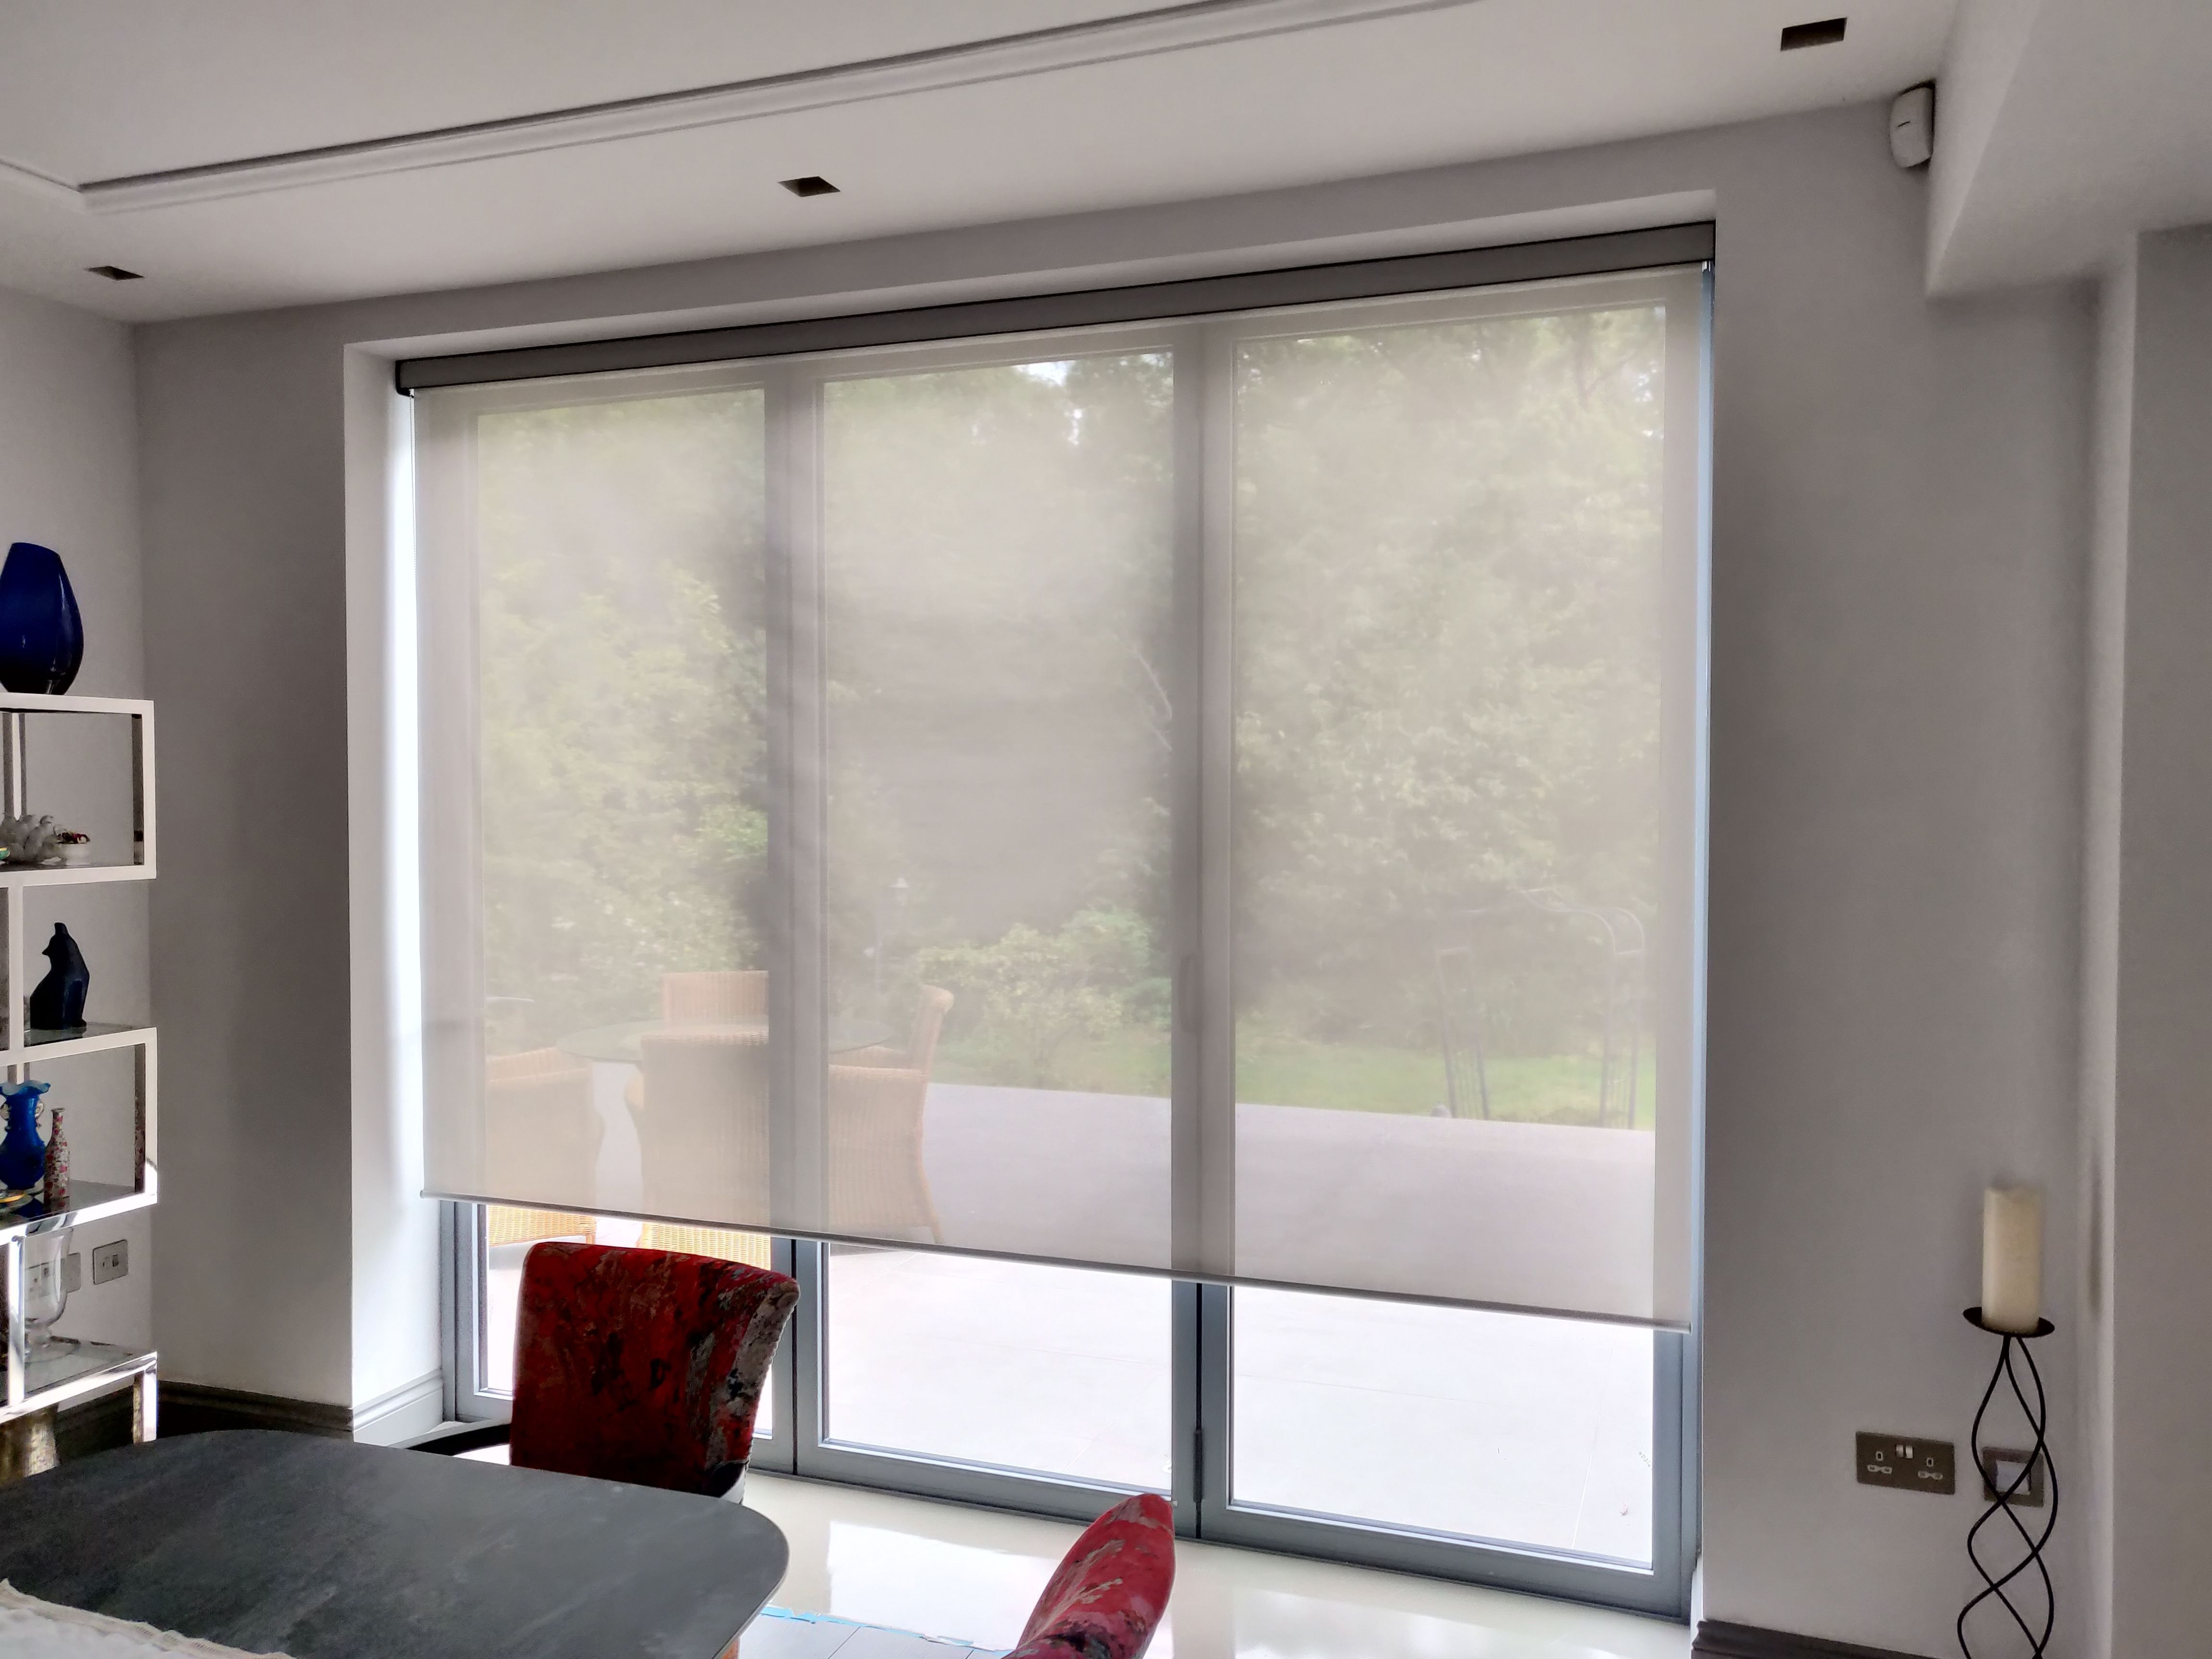 3 Stupefying Useful Ideas: Outdoor Blinds Awnings blinds for ... on exterior window design, exterior window products, exterior stone privacy, exterior window film, exterior window terms, exterior window shades, exterior window security, exterior privacy curtains, exterior window glossary,